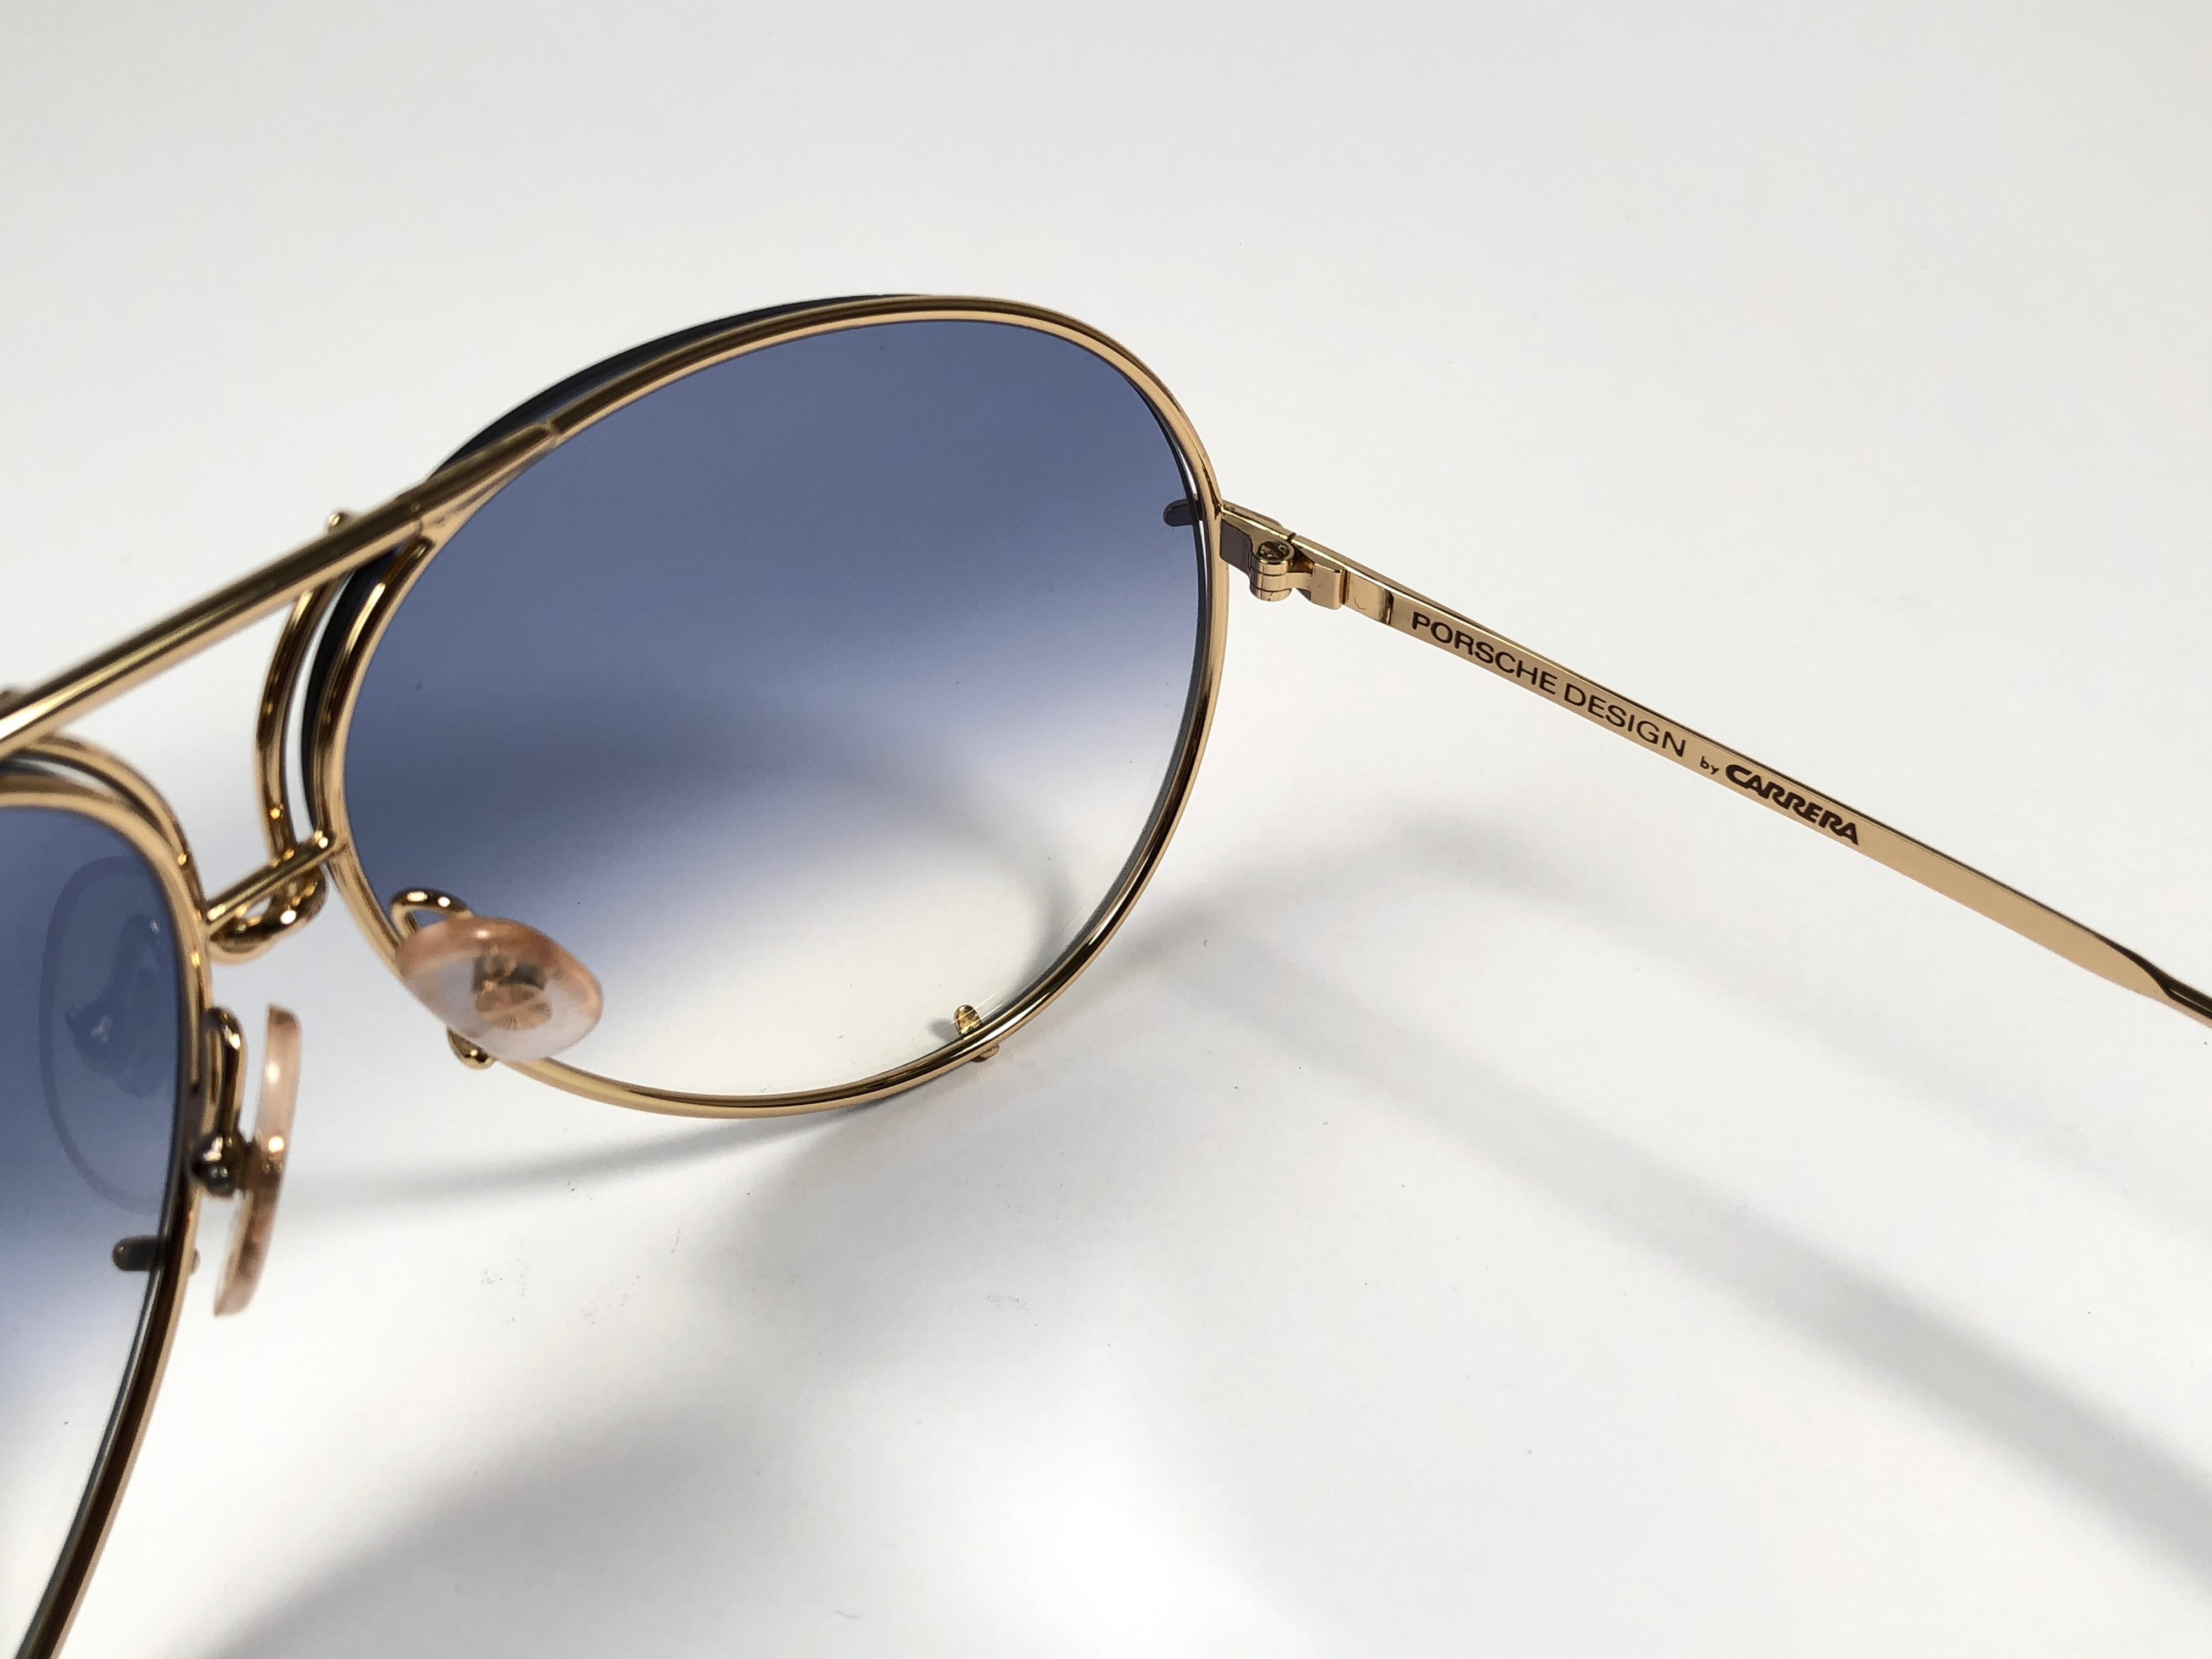 0a4a1eaa37515 New Vintage Porsche Design By Carrera 5621 White Gold Large Sunglasses  Austria For Sale at 1stdibs